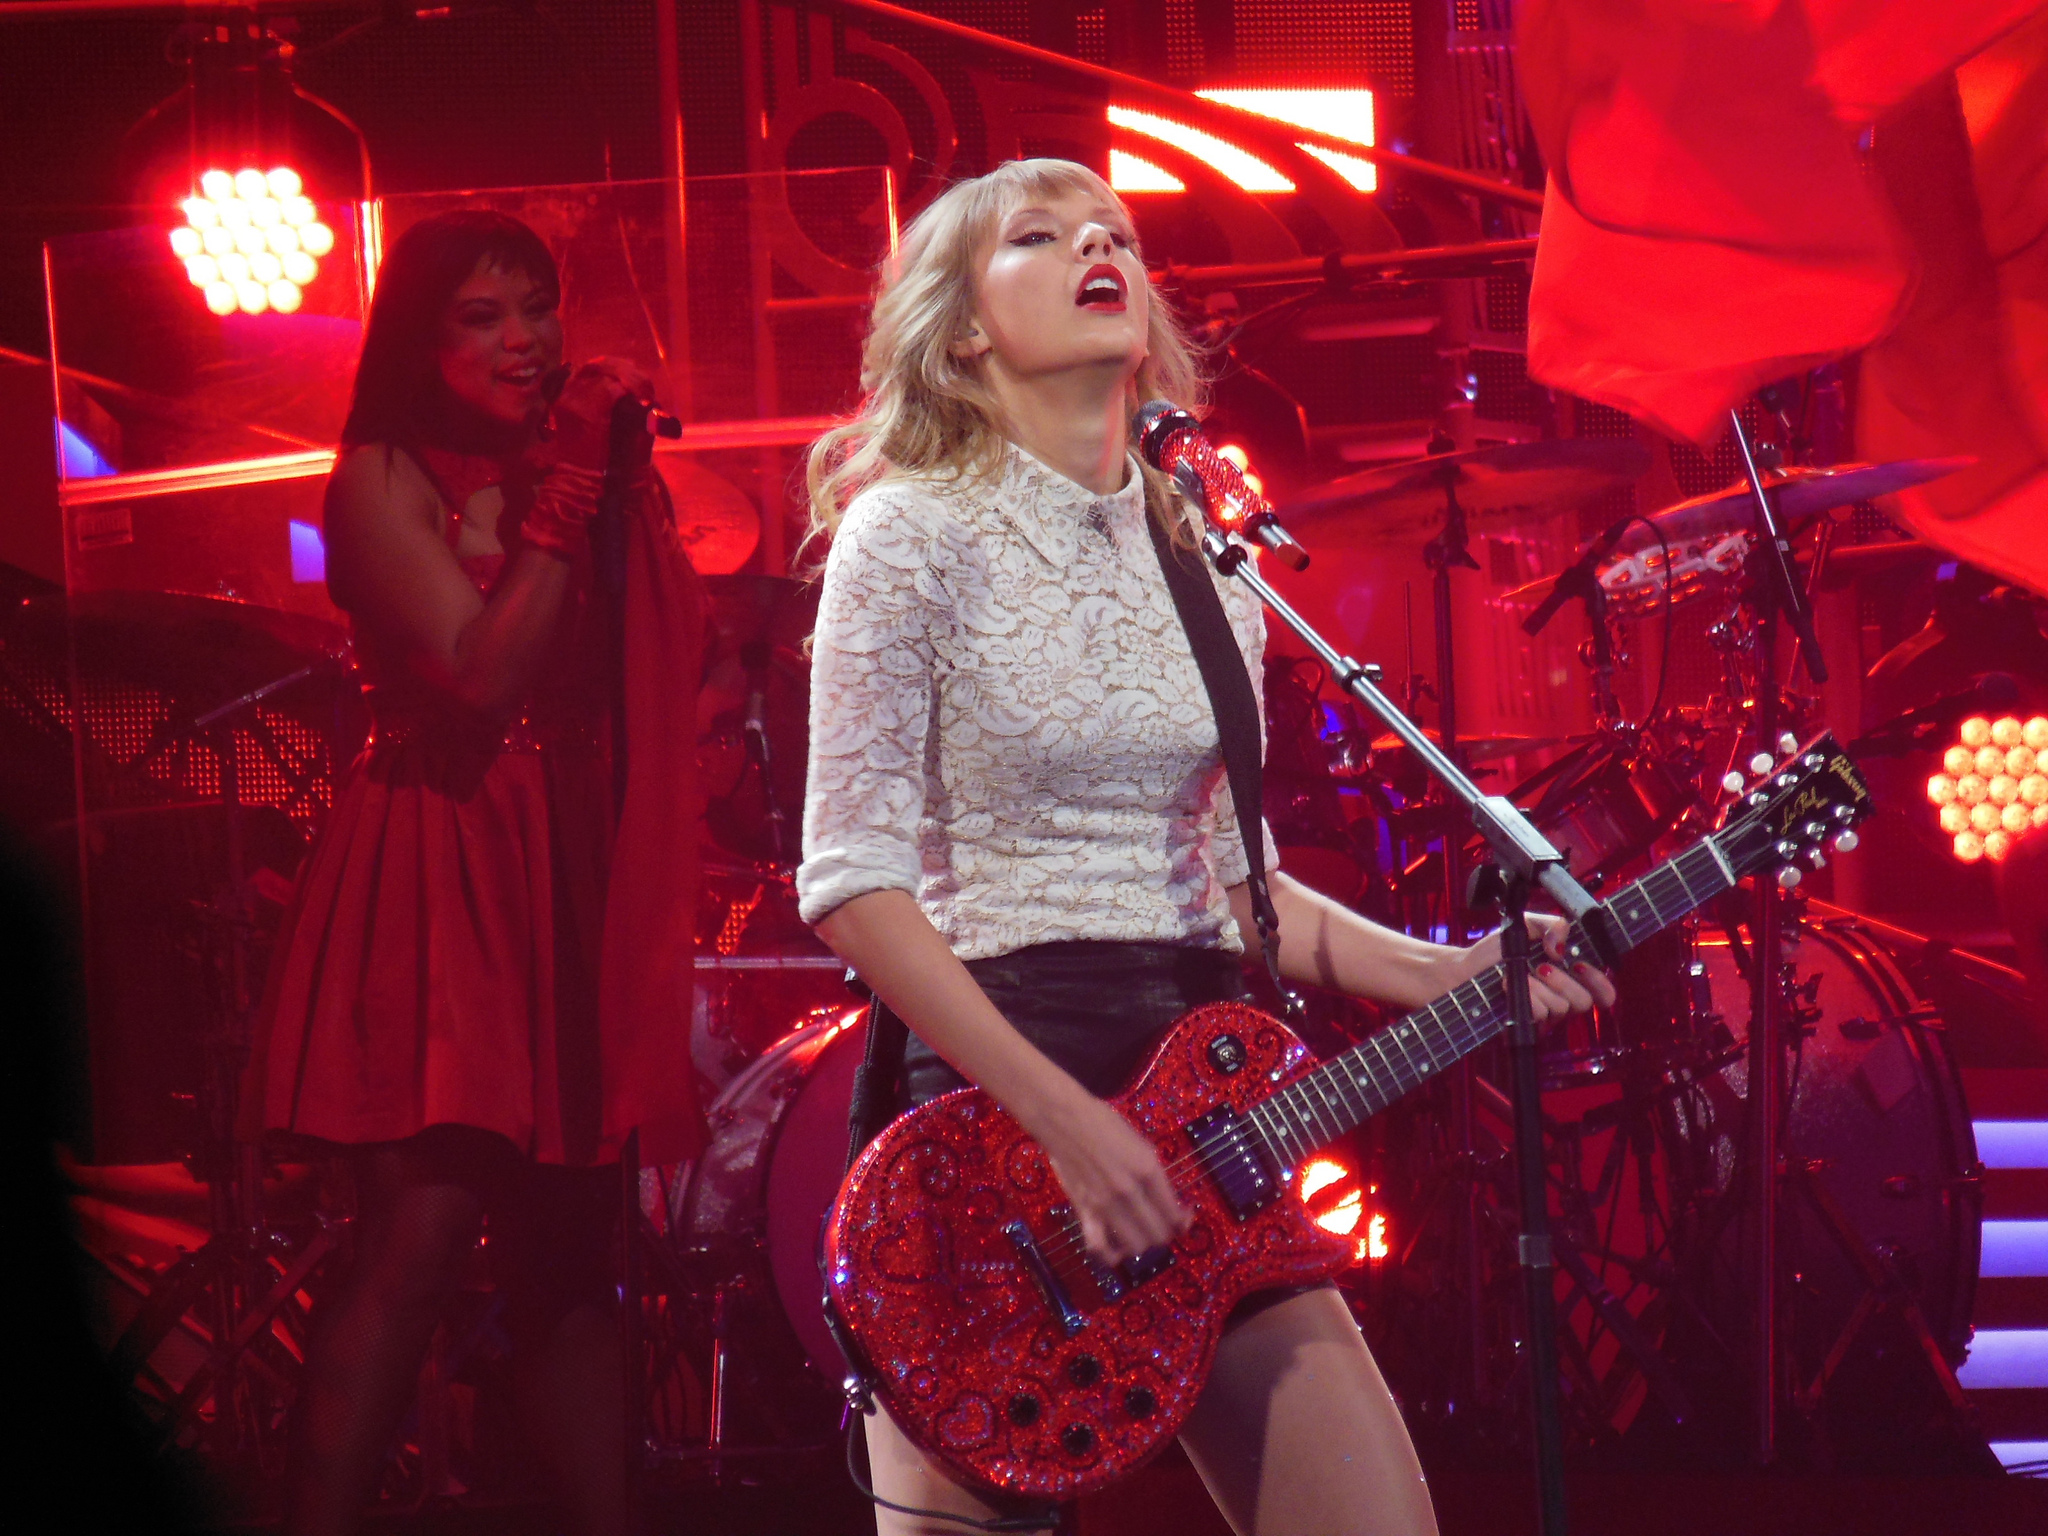 Depiction of Red Tour